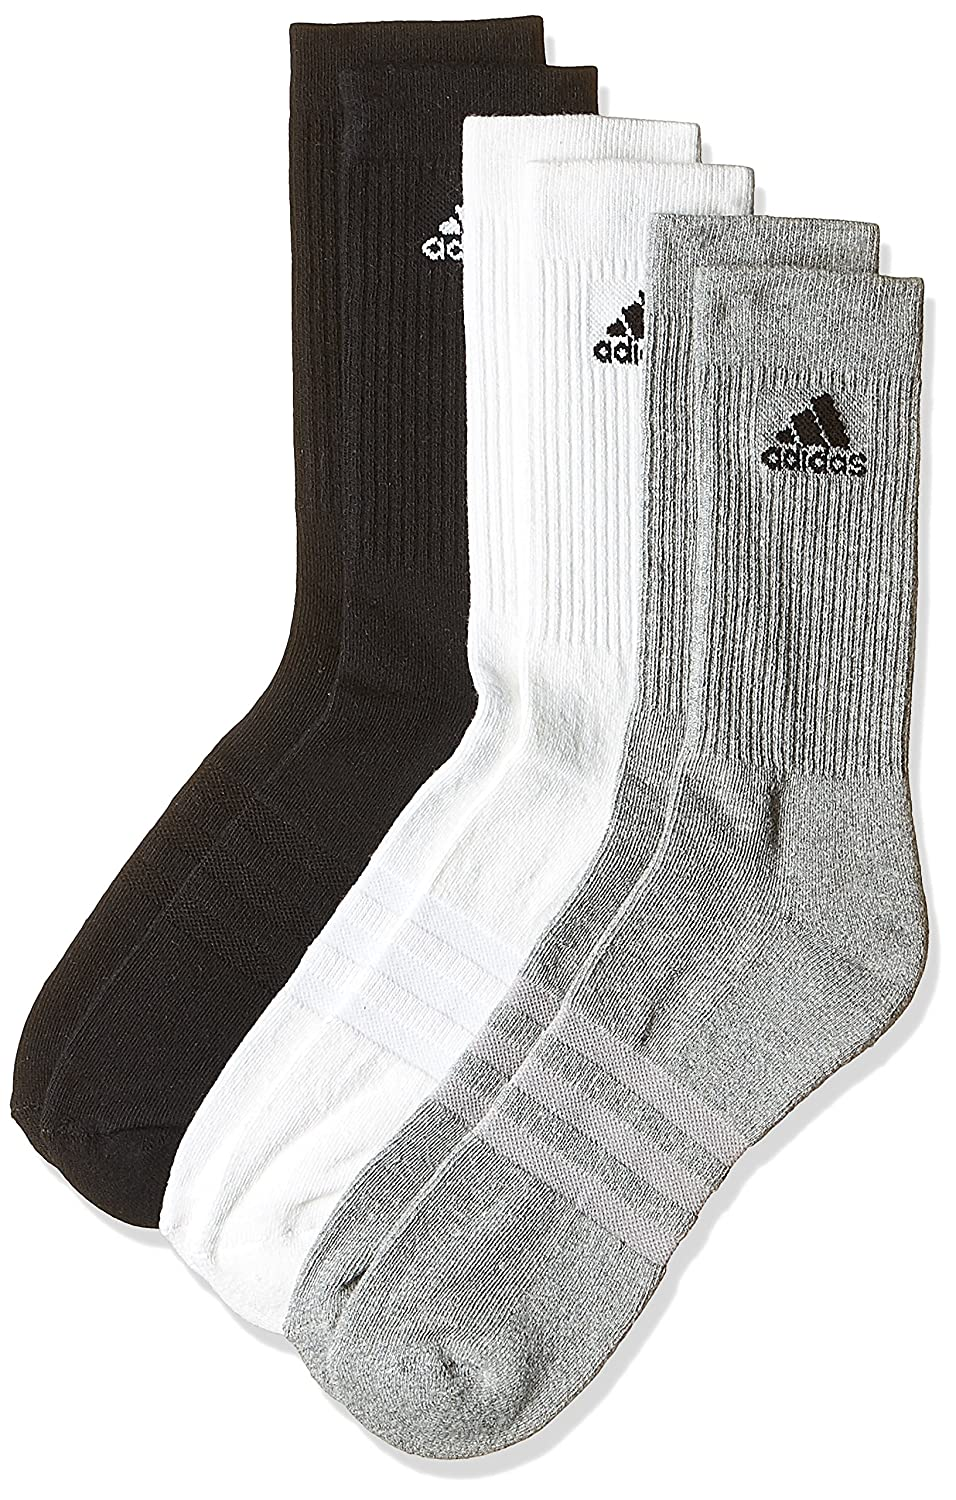 adidas Kids 3-Stripes Performance Crew Socks (pair Of 3): adidas  Performance: Amazon.co.uk: Clothing